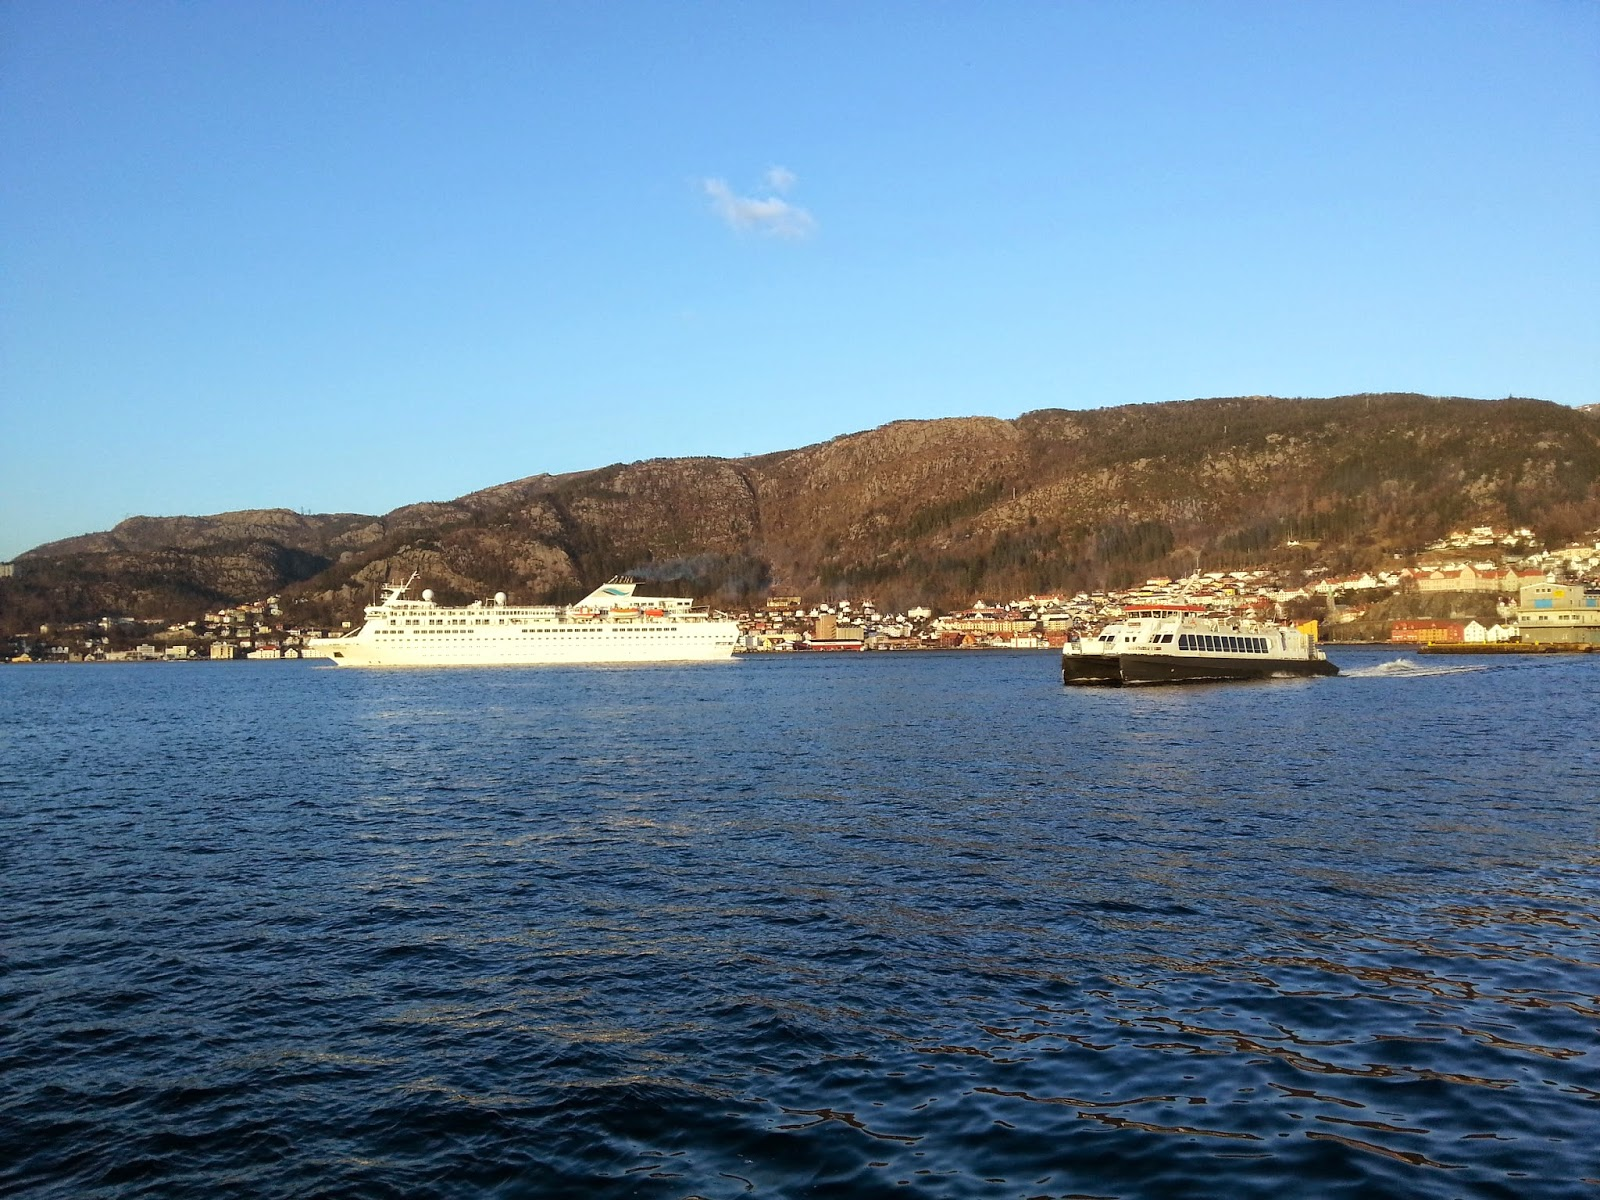 Voyages of Discovery cruise ship MV Voyager in Bergen, Norway